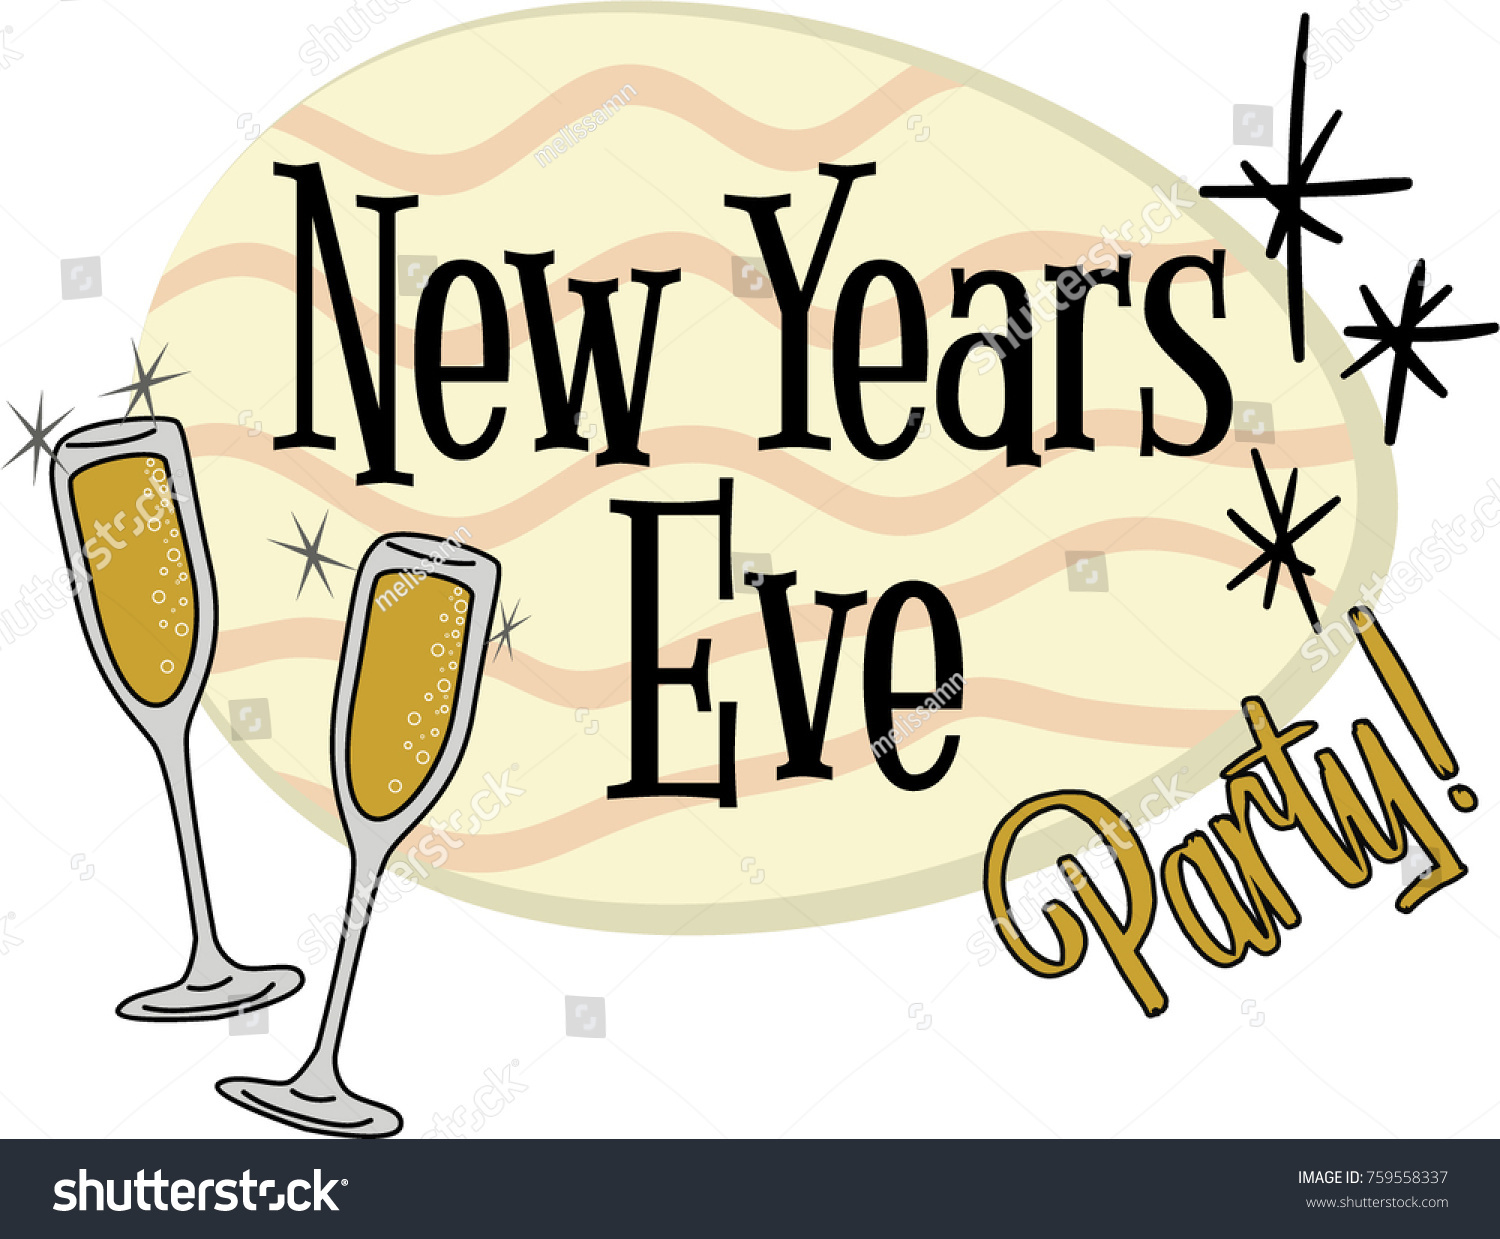 New Years Eve Clip Art - Royalty Free - GoGraph